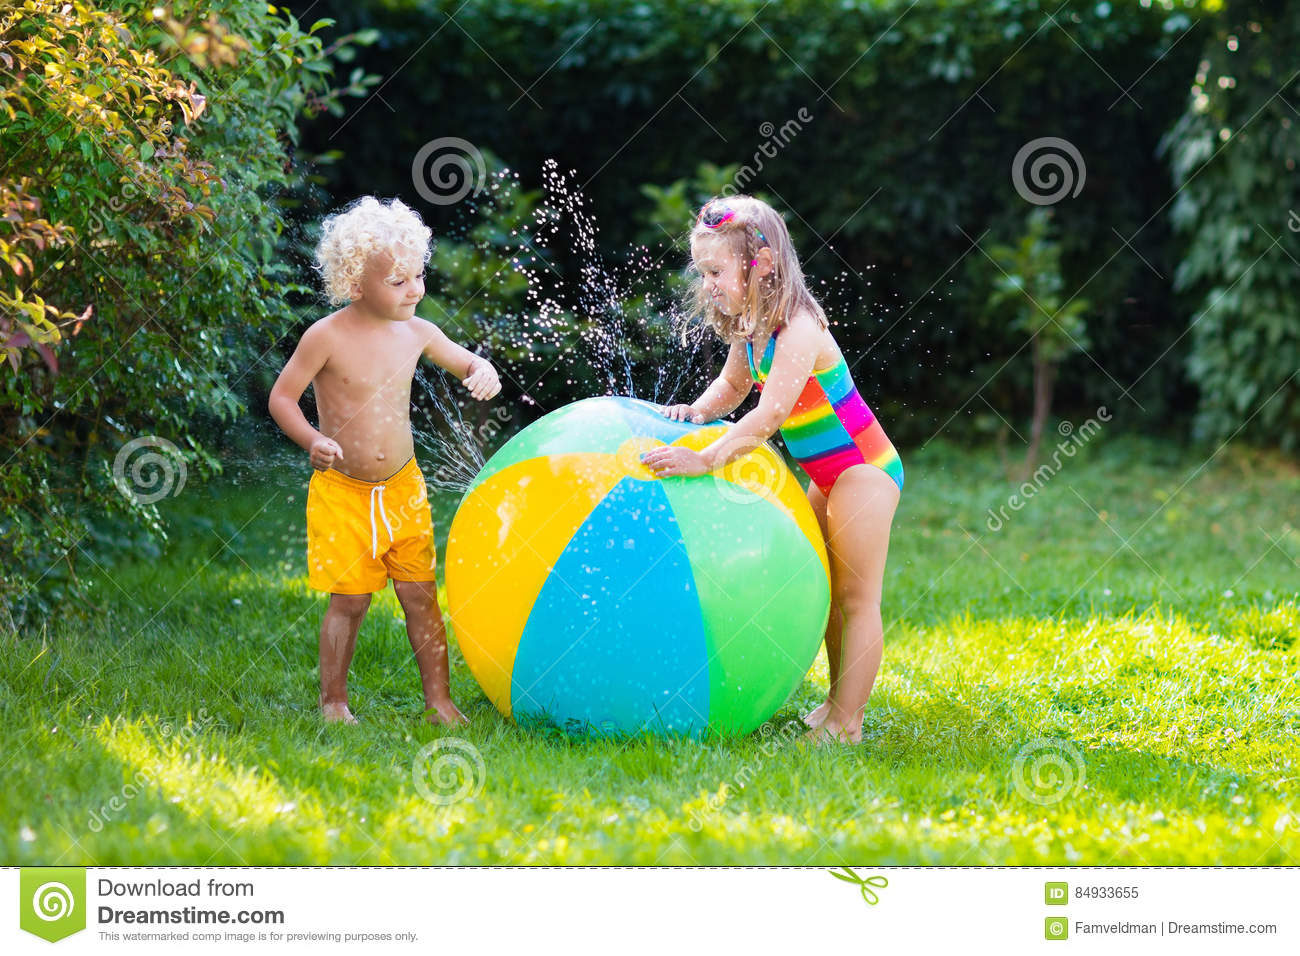 kids play water Kids playing with water ball toy